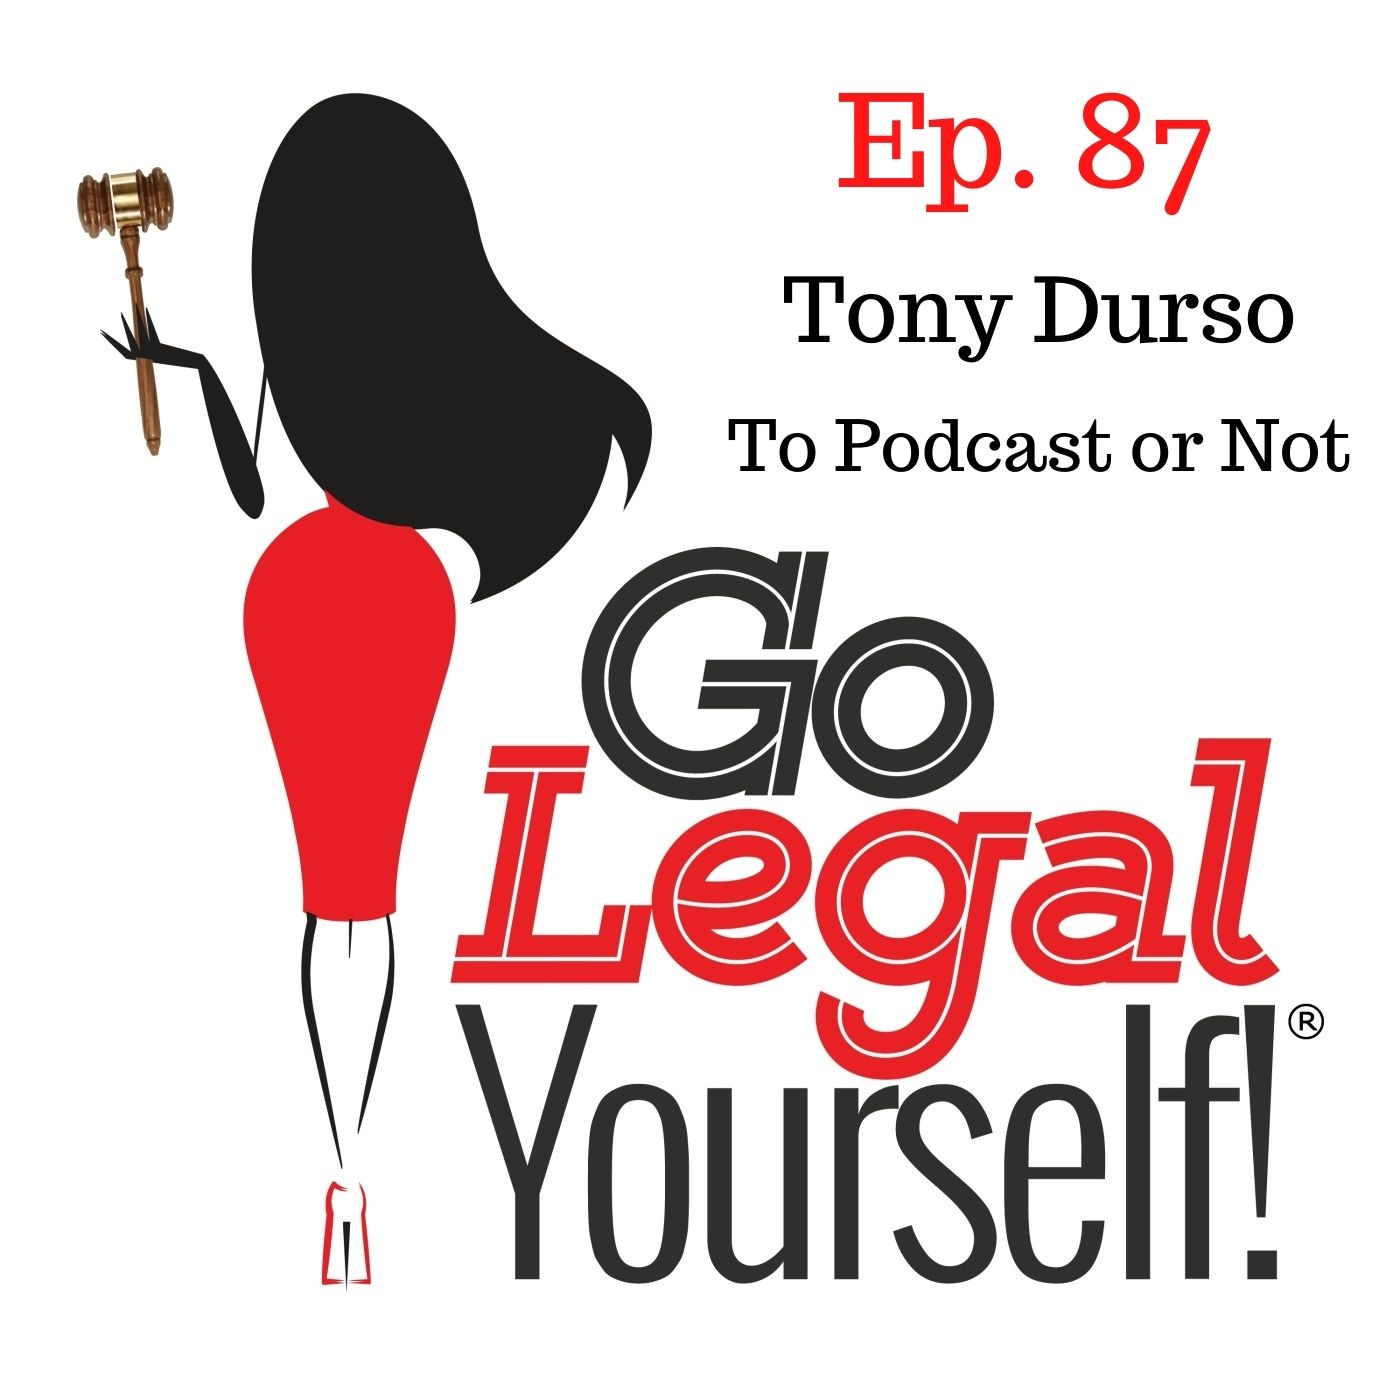 Ep. 87 Tony Durso: To Podcast or Not